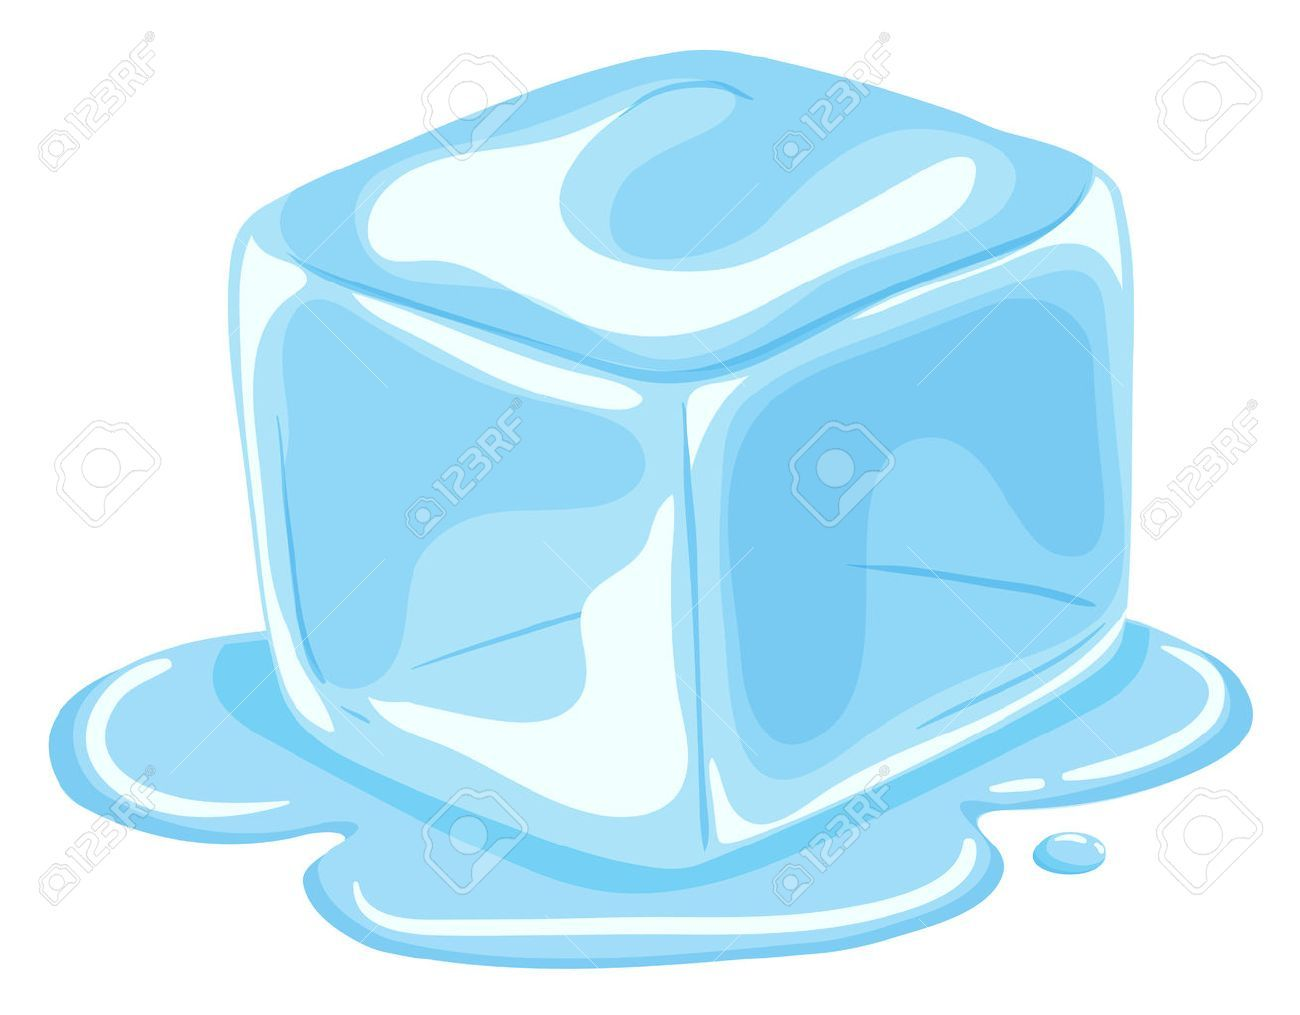 Ice clipart free 5 » Clipart Portal.